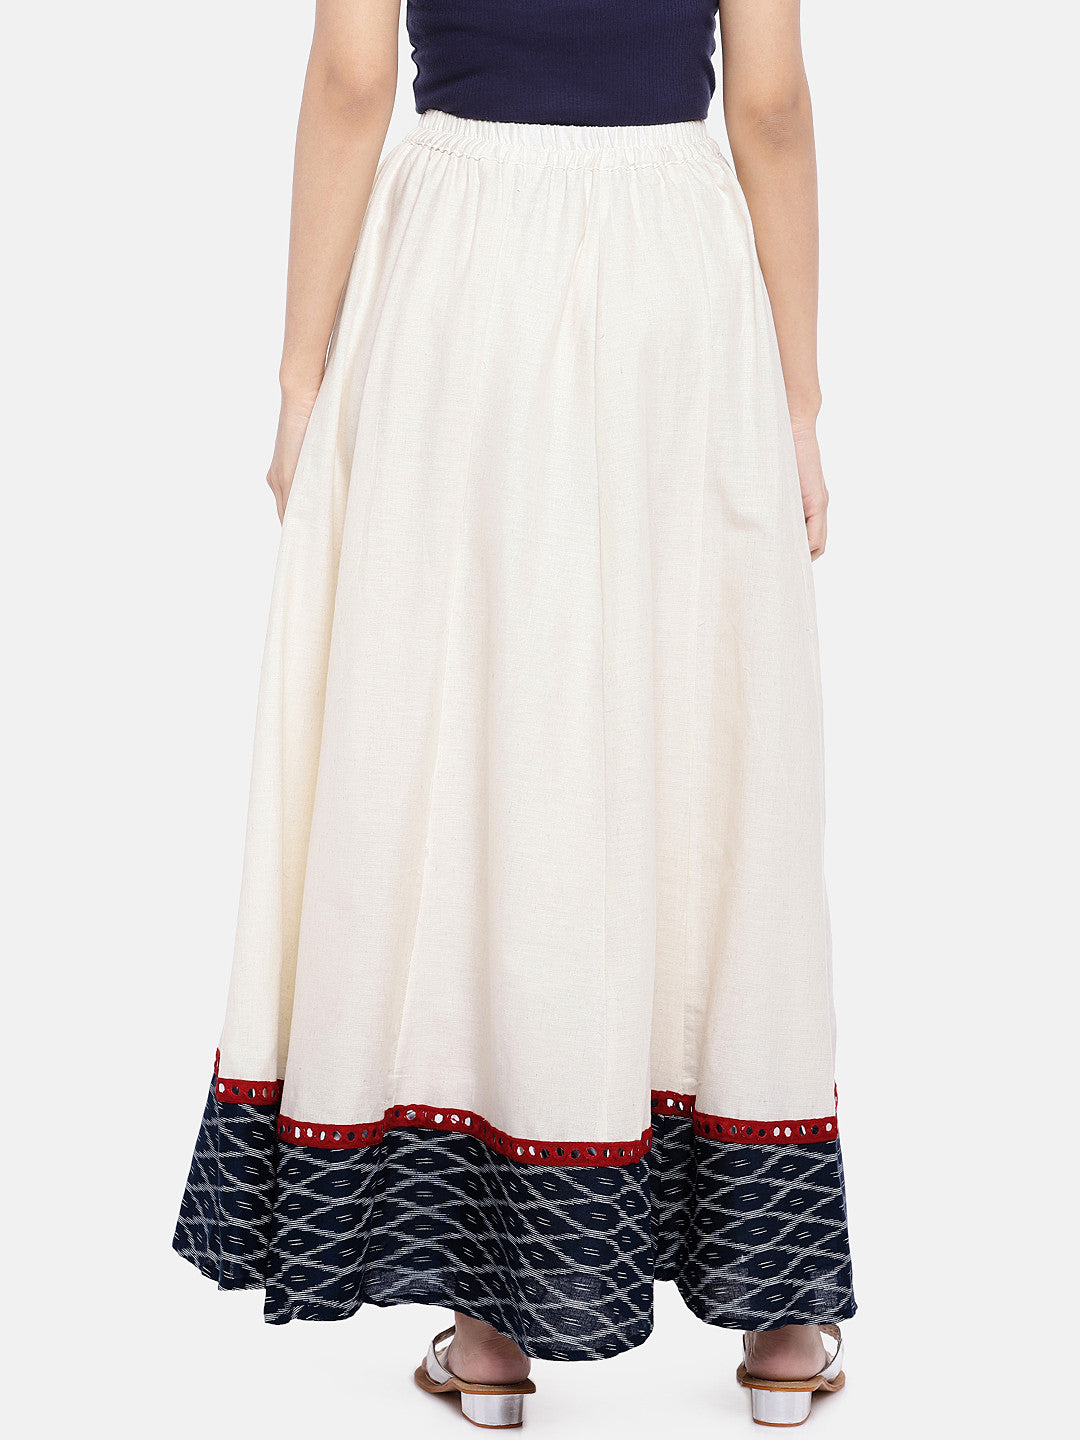 White Solid Flared Skirt-3